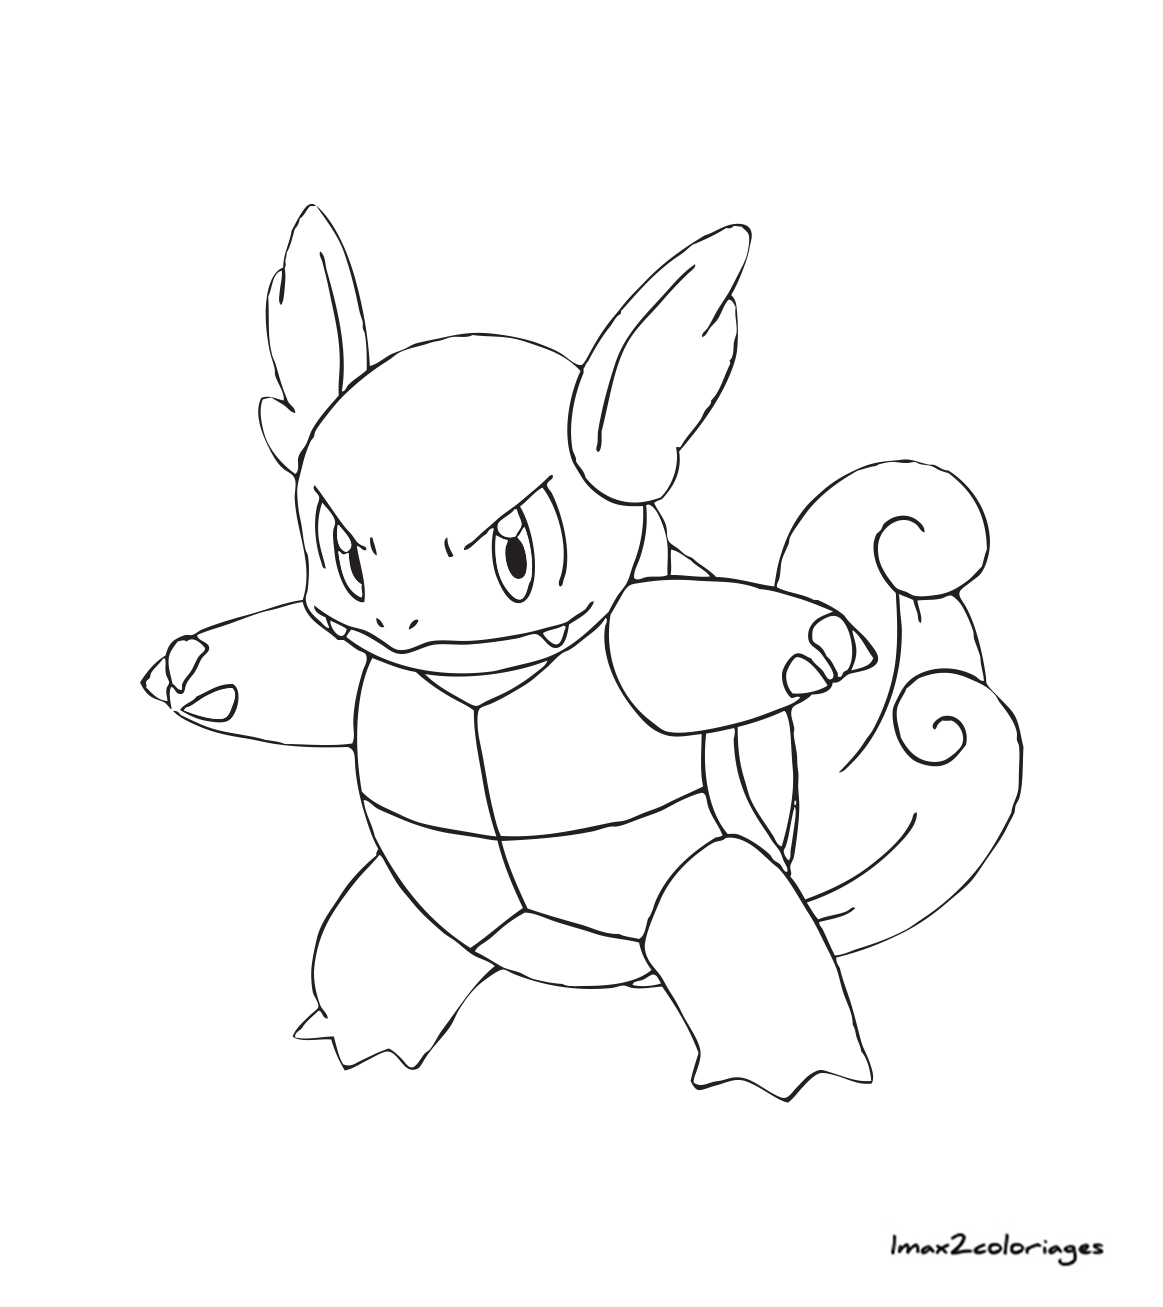 Coloriages Pokemon Carabaffe